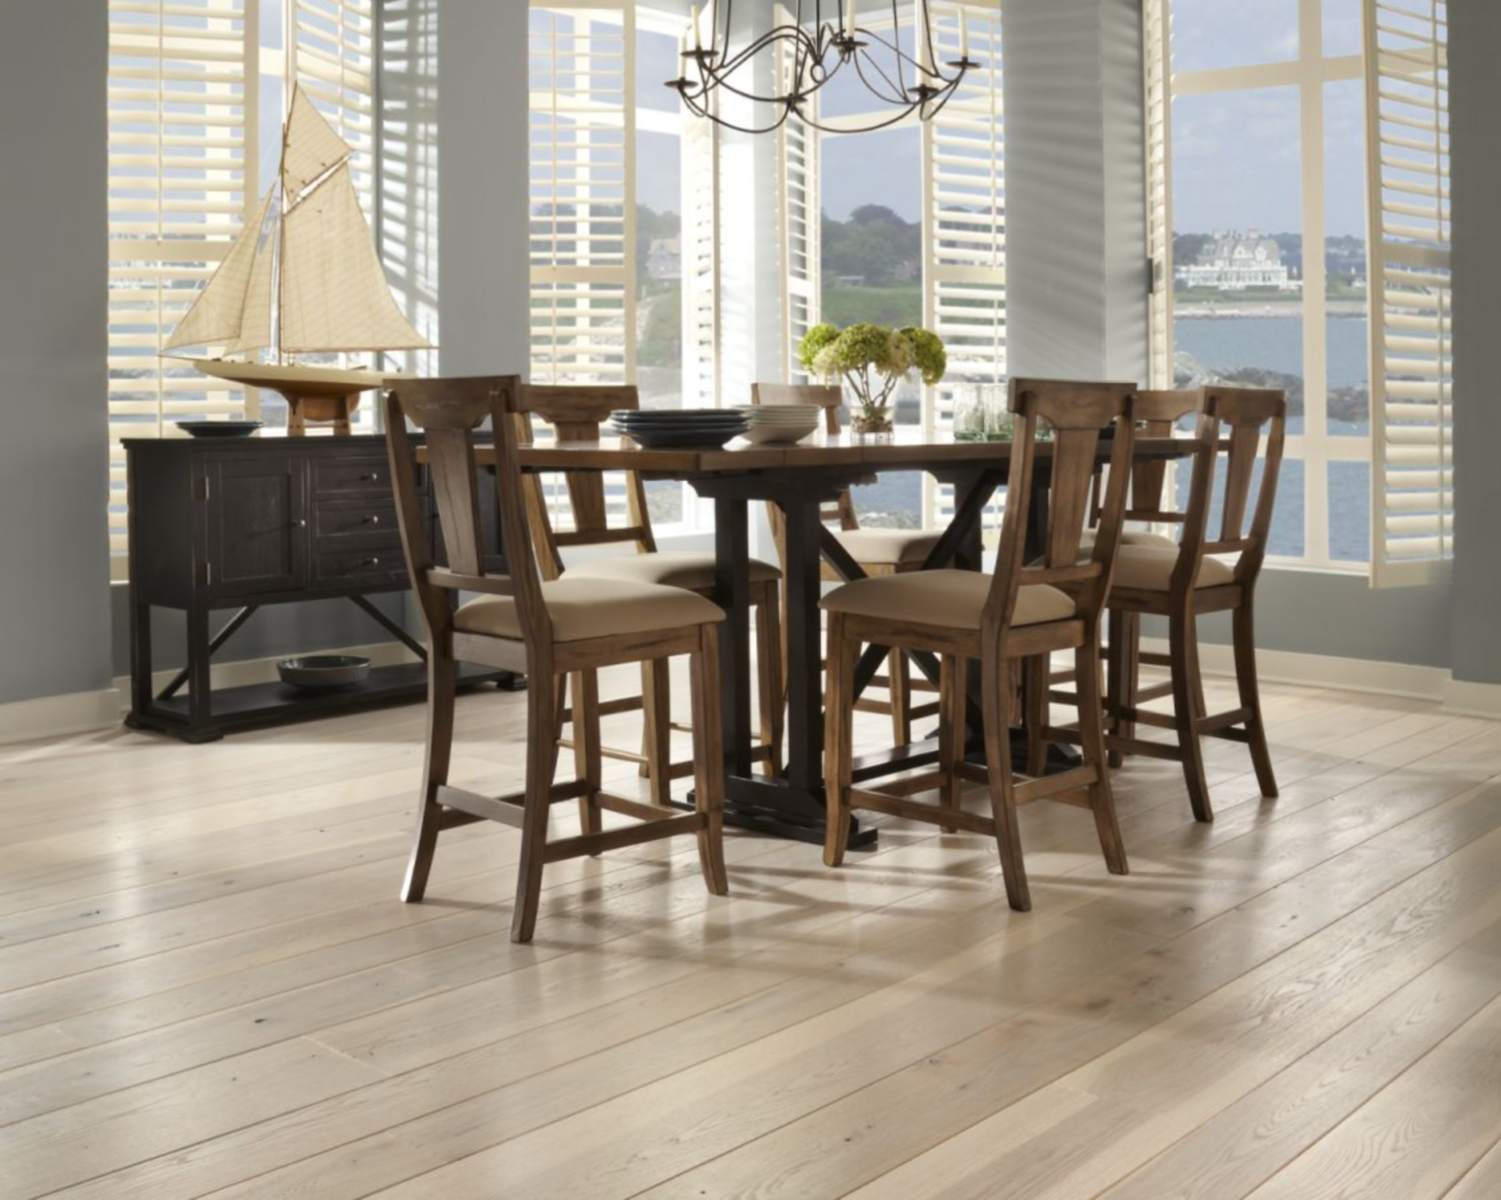 best place to buy hardwood flooring online of top 5 brands for solid hardwood flooring inside a dining room with carlisle hickorys wide plank flooring